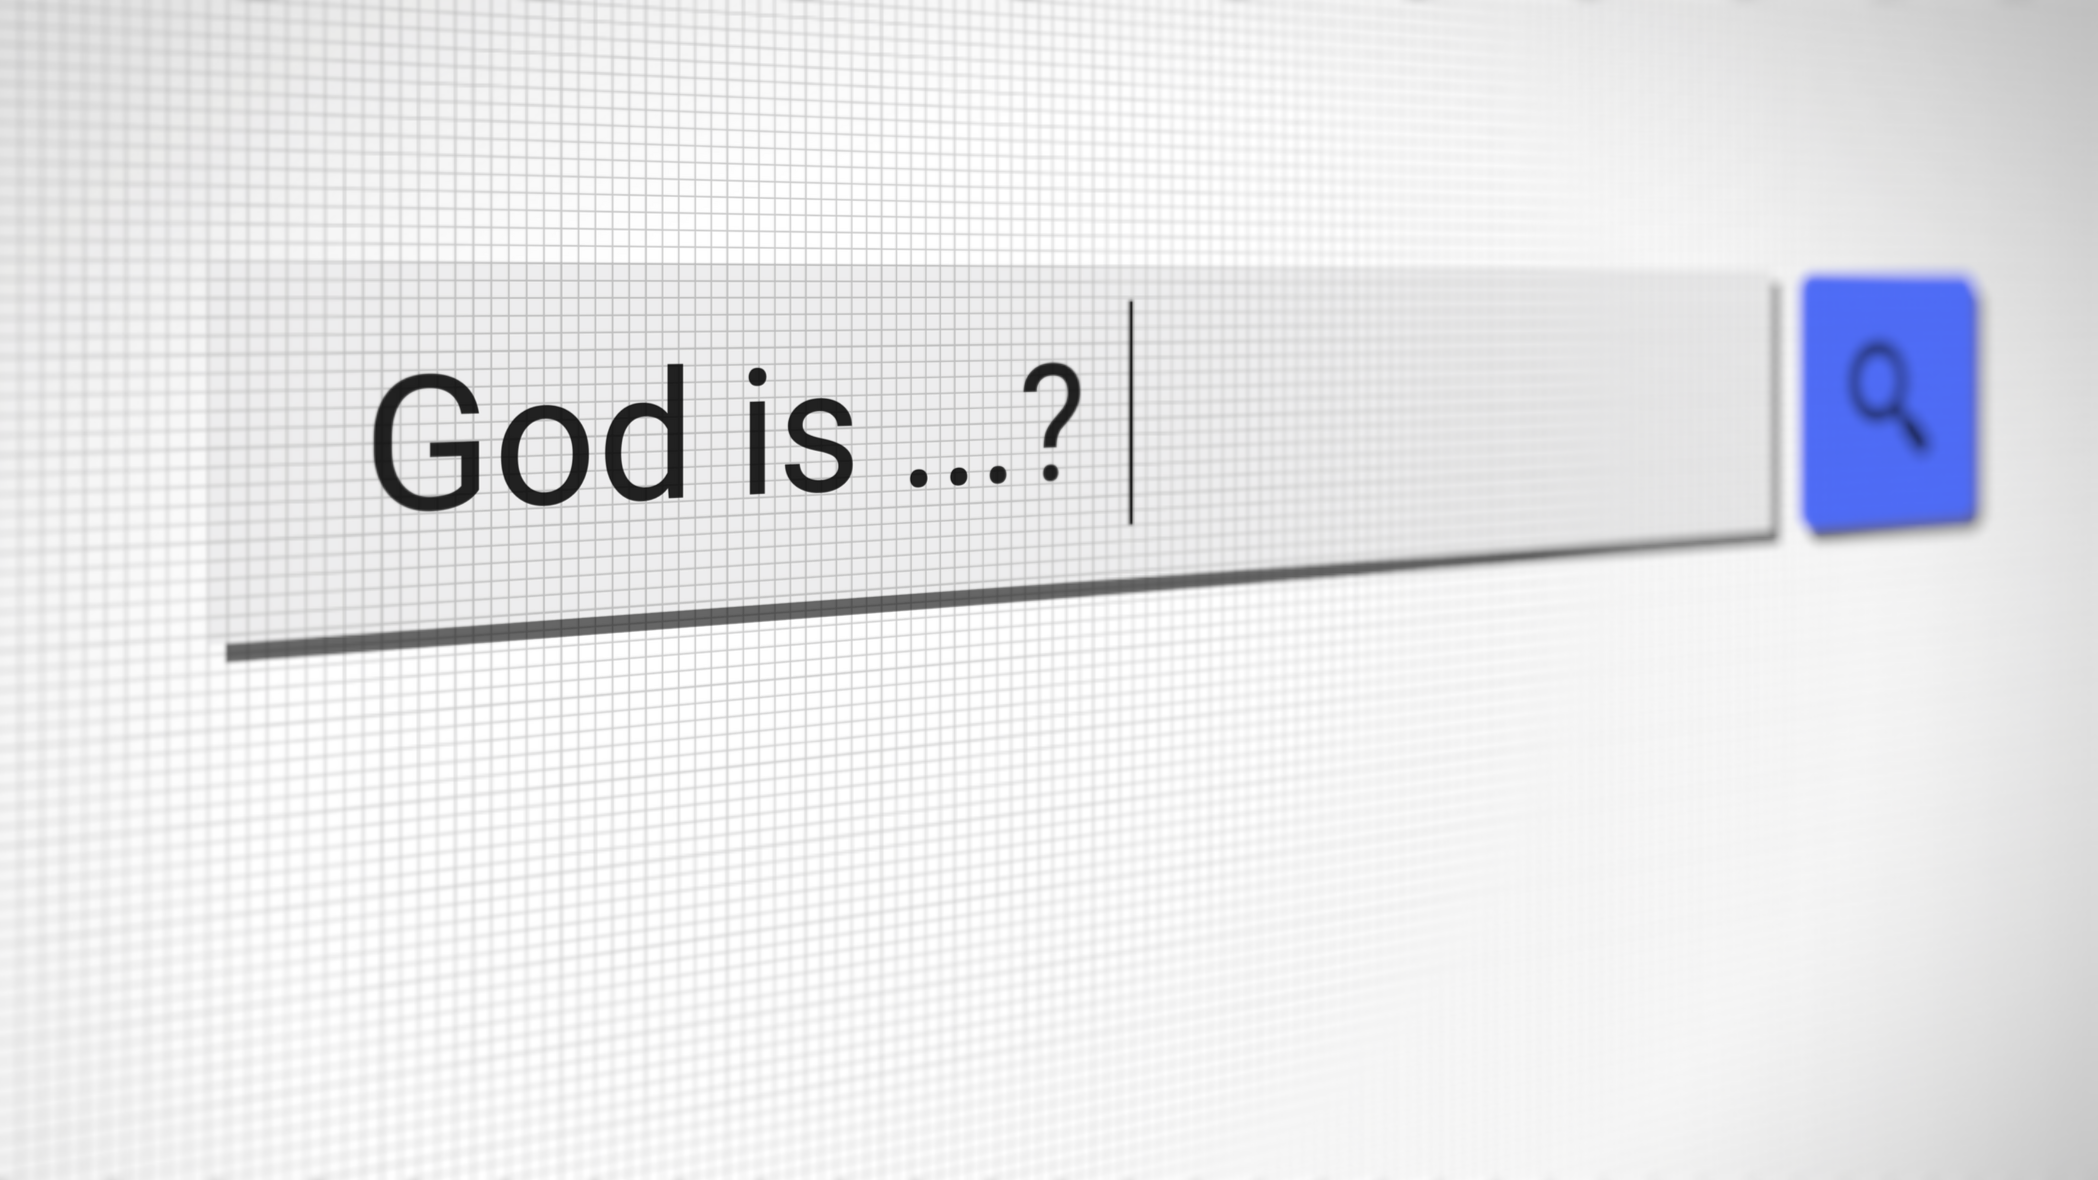 God is series (2).png